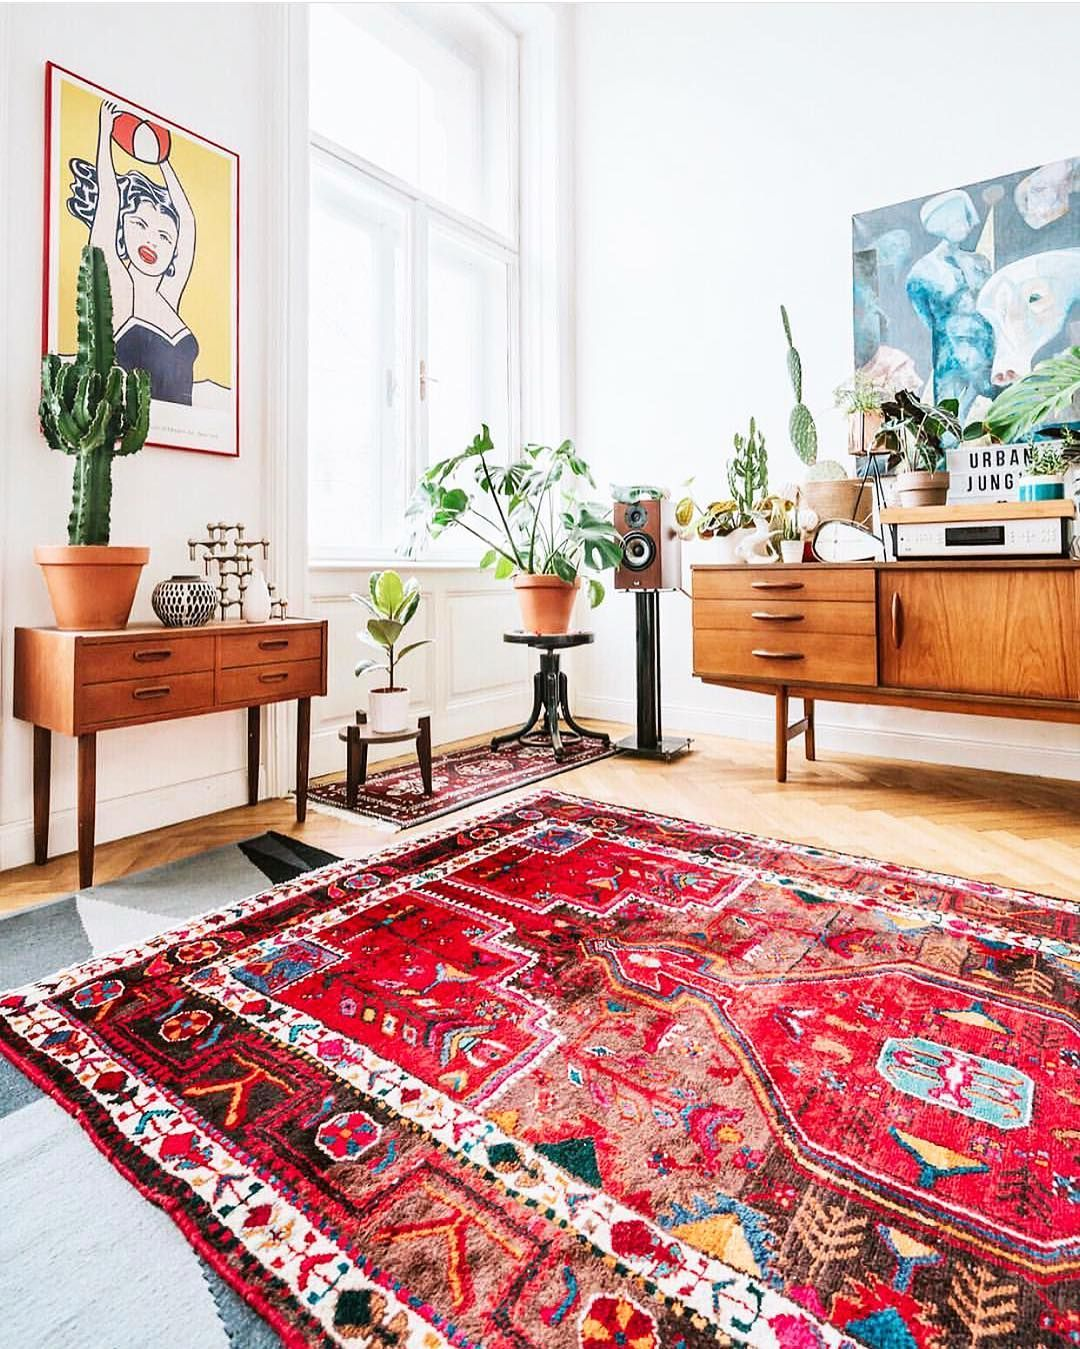 Is This Rug Too Bright With Images Red Rug Living Room